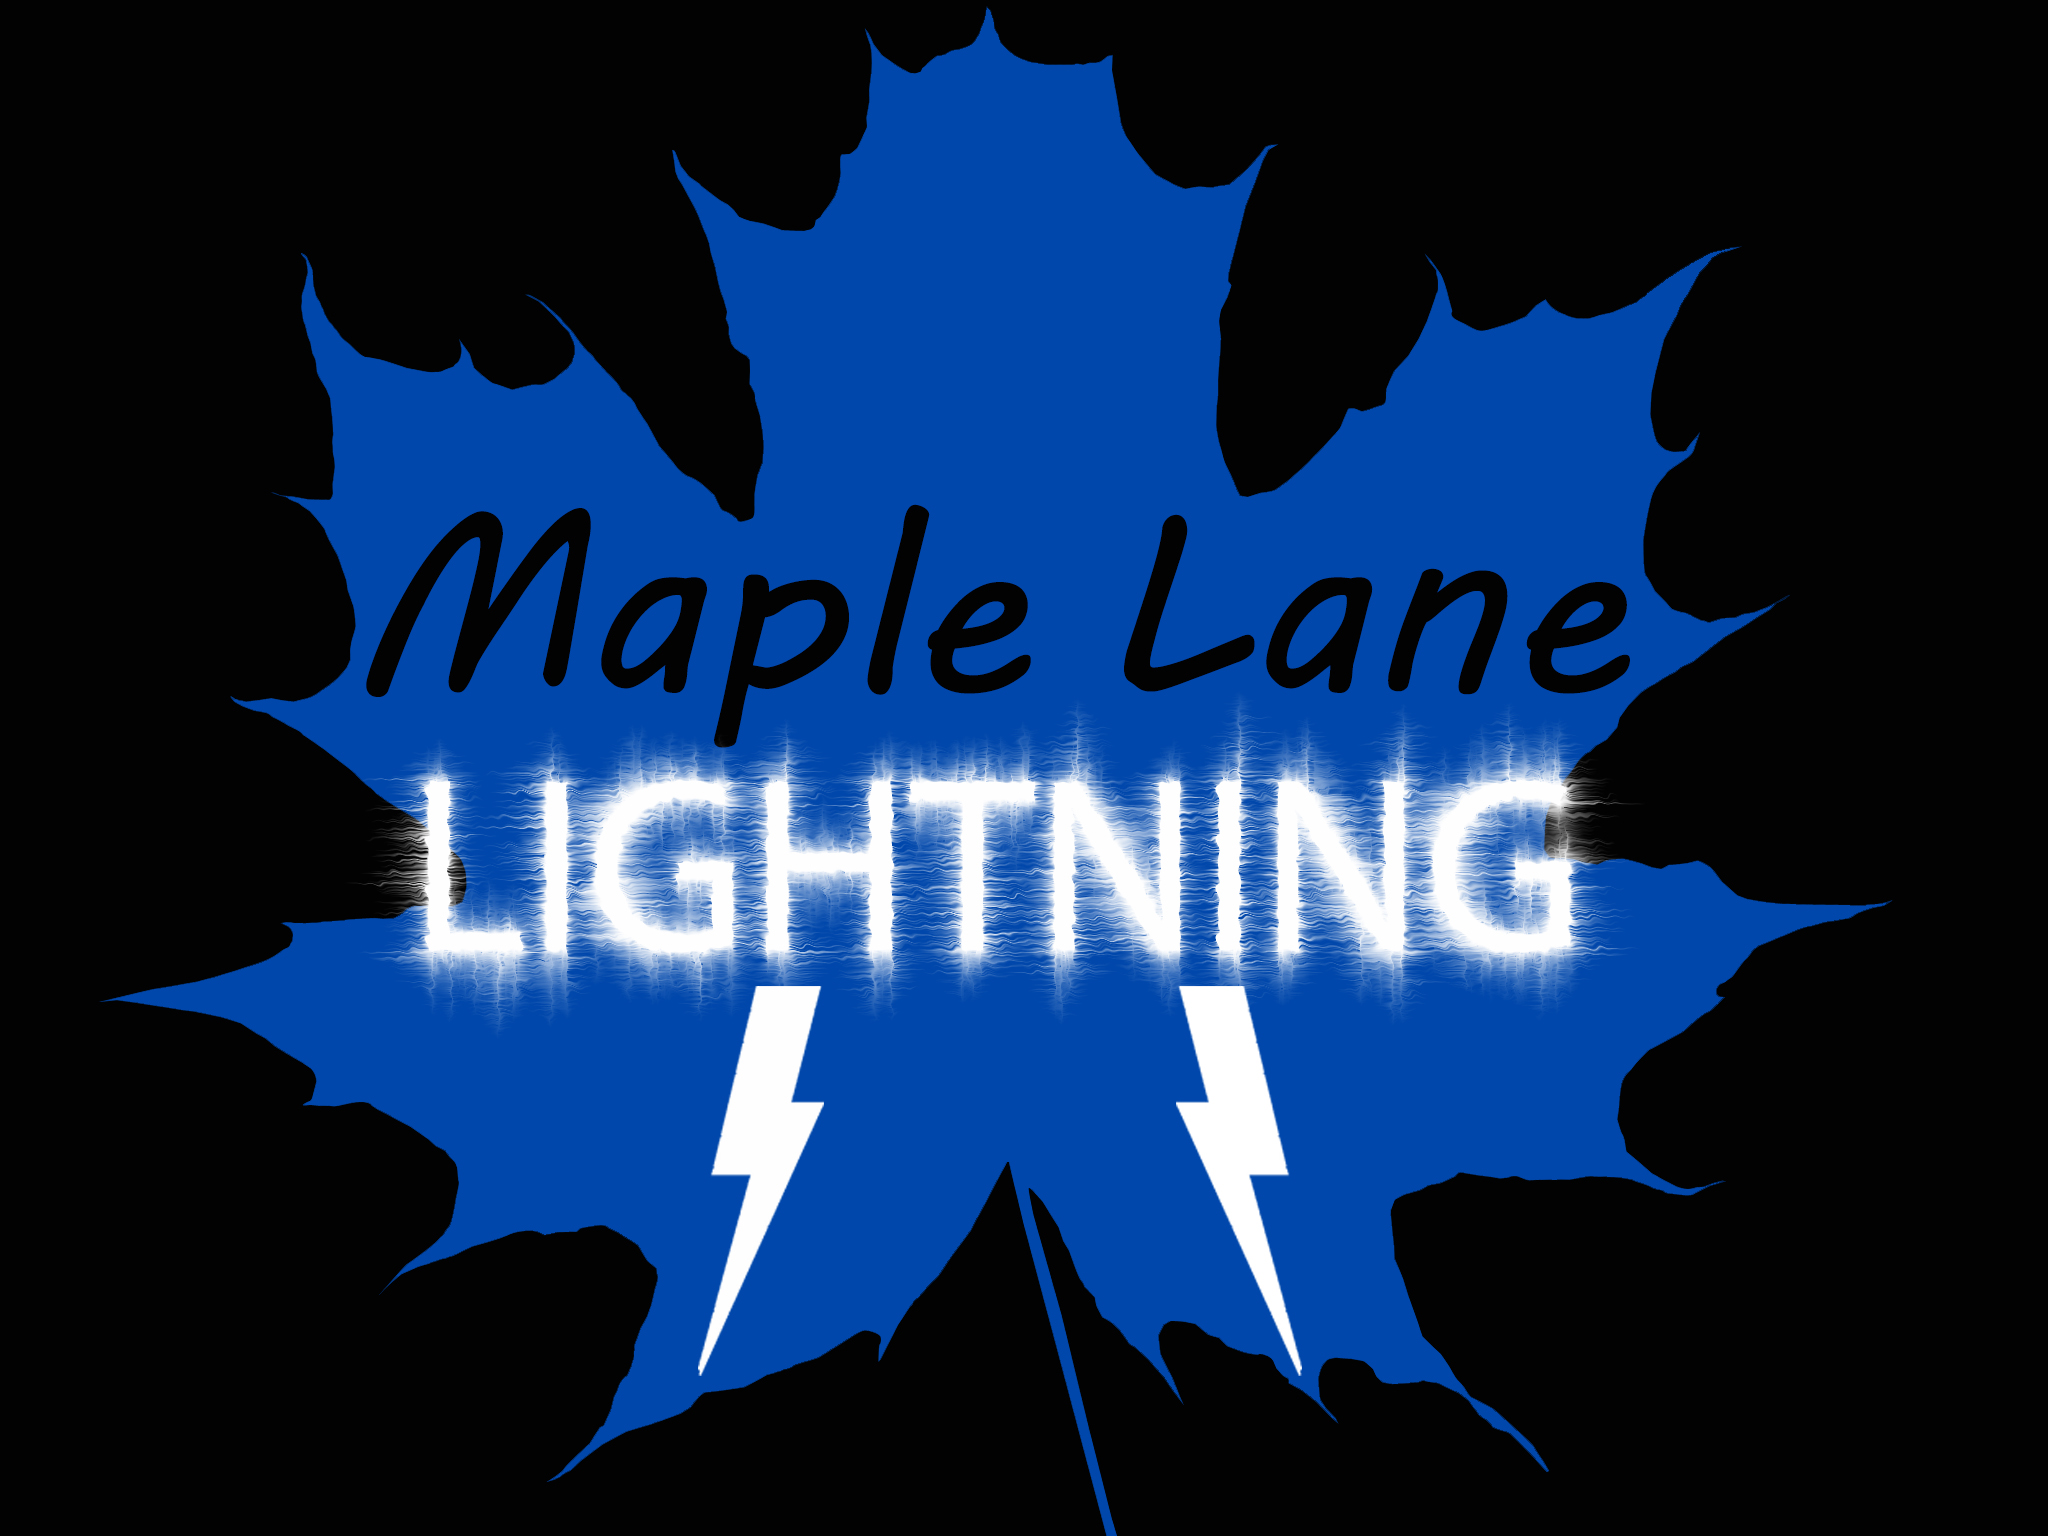 Logo Design by Matthew Foor - Entry No. 132 in the Logo Design Contest Maple Lane Logo Design.